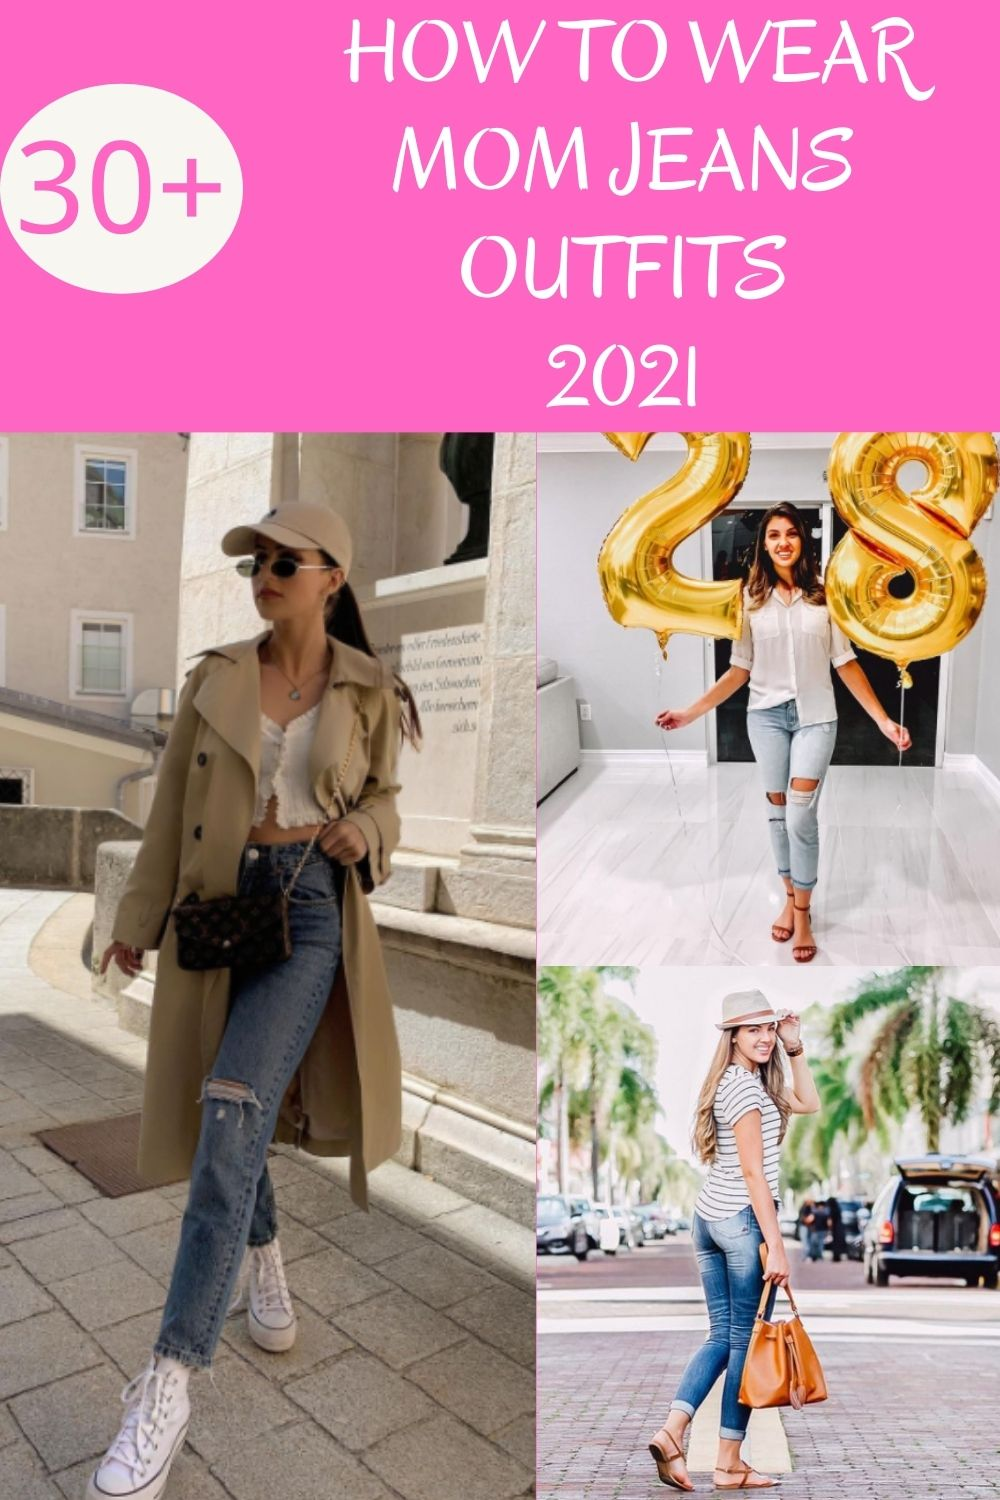 What Are Mom Jeans outfits?